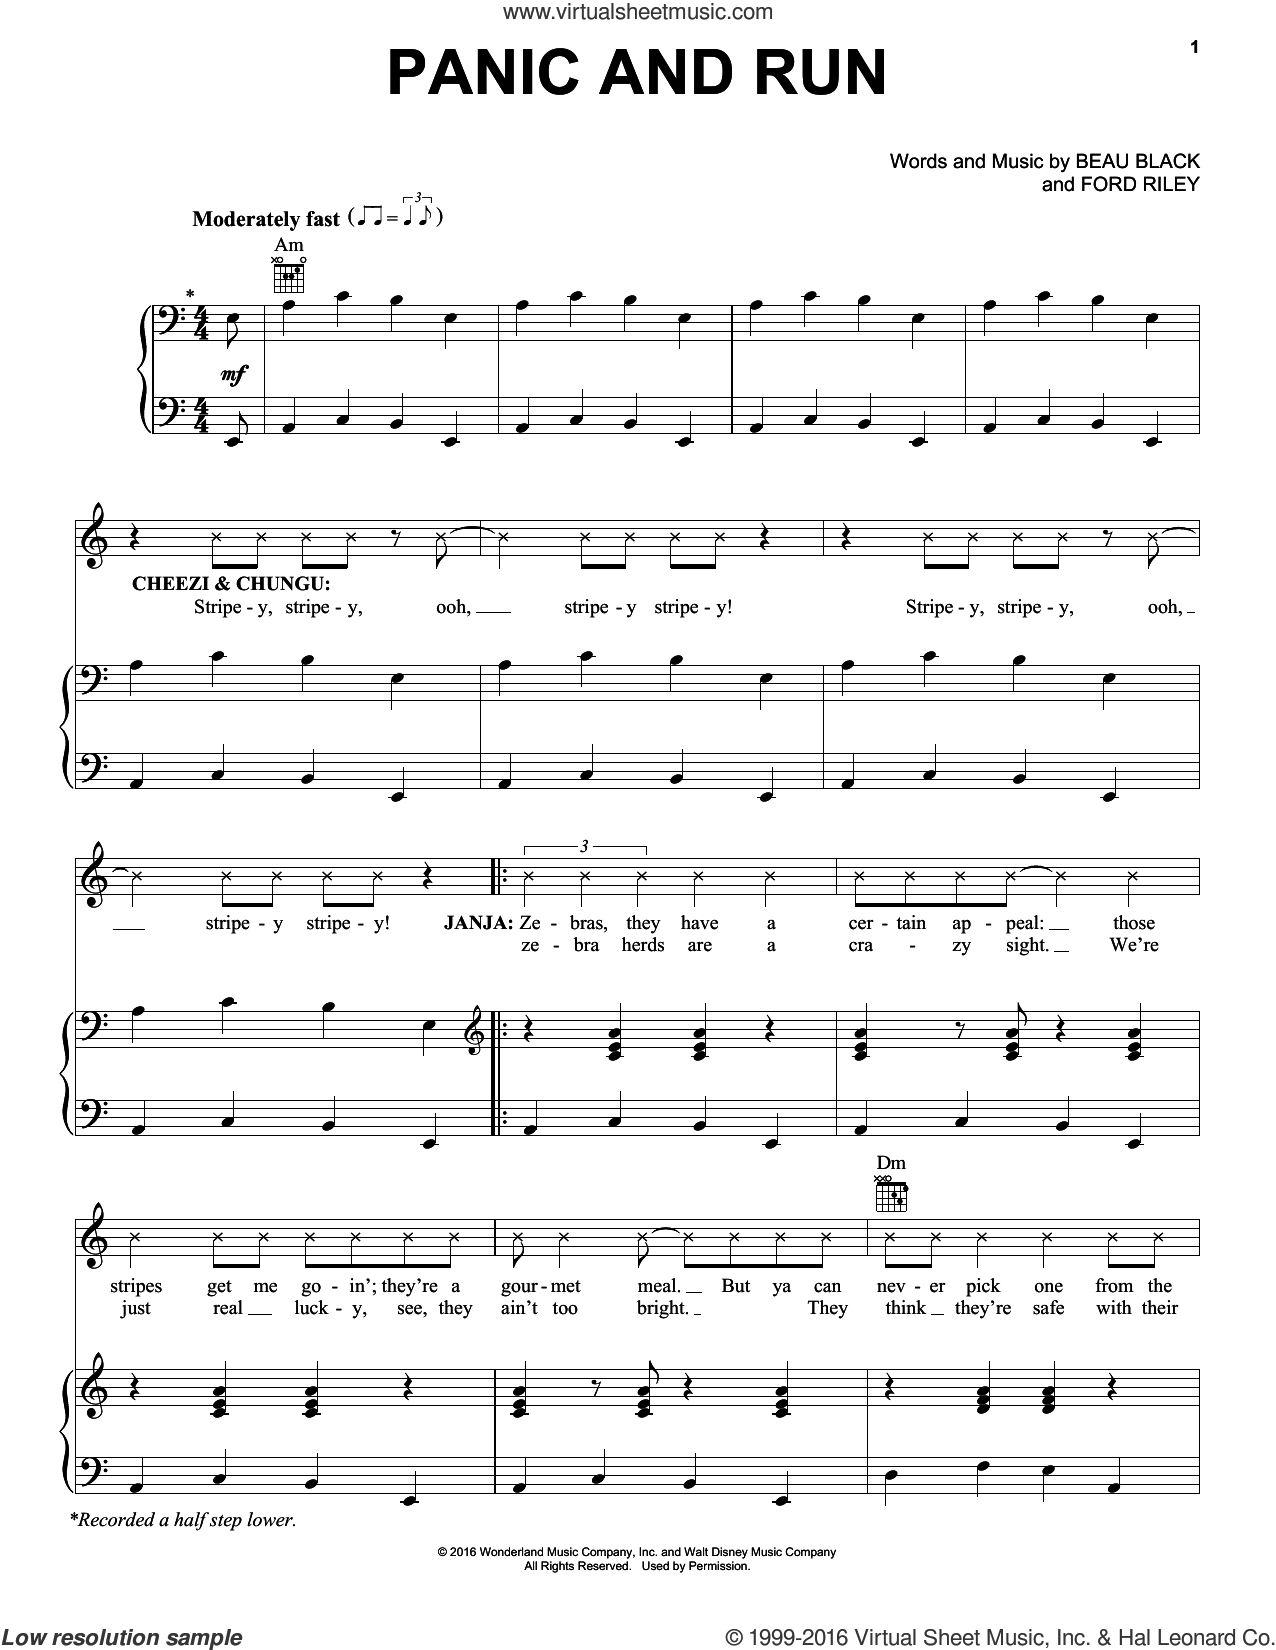 Panic And Run sheet music for voice, piano or guitar by Beau Black and Ford Riley, intermediate skill level